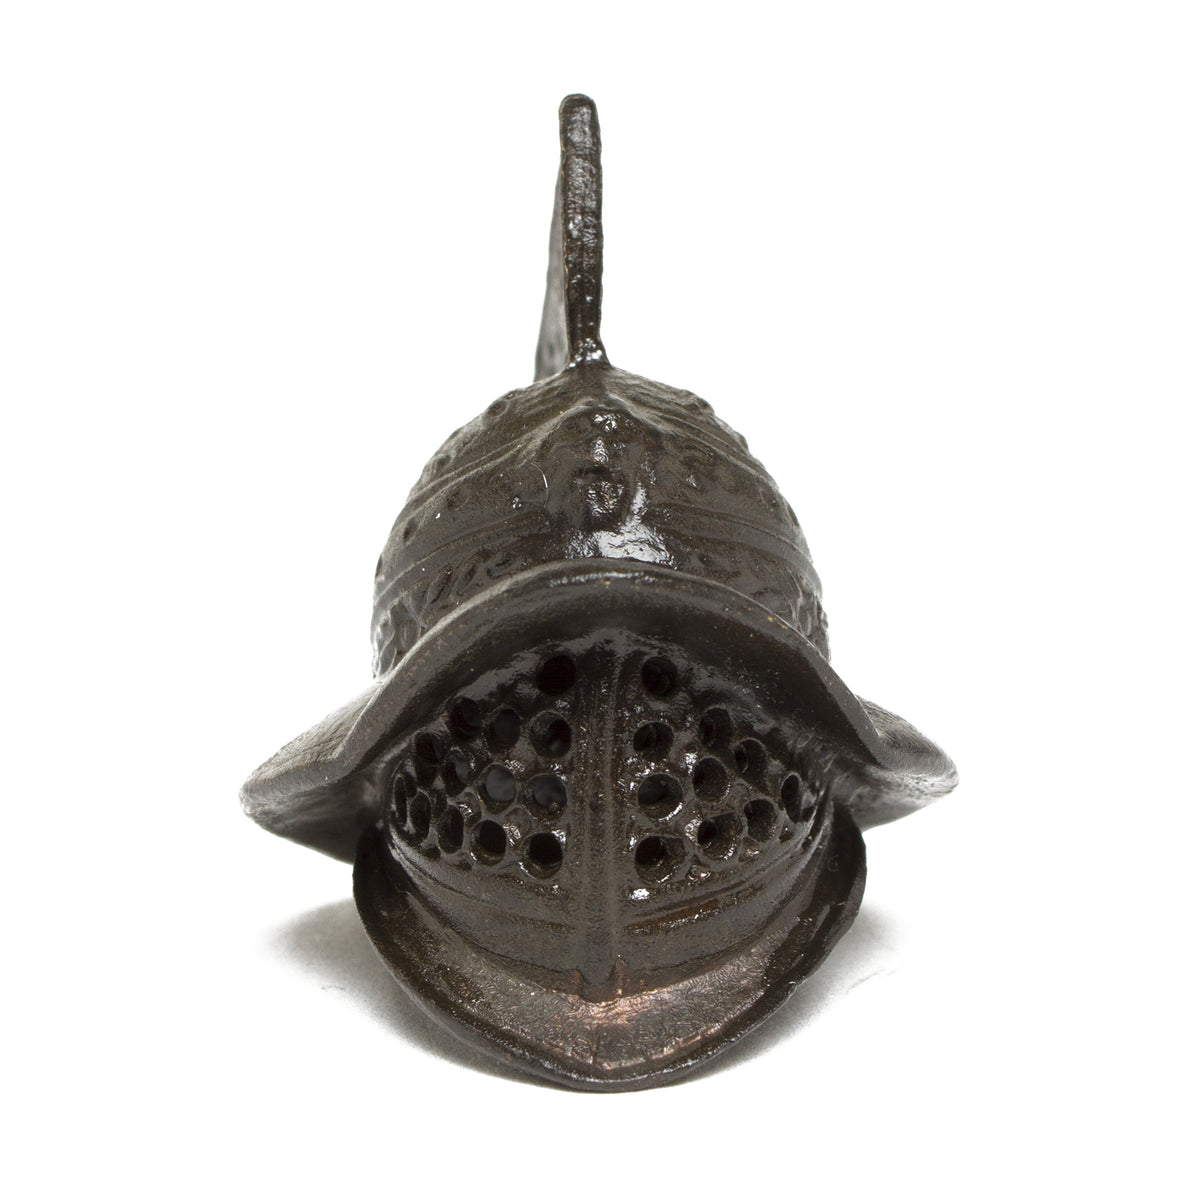 Roman Gladiator Helmet - Cast Brass Reproduction | Getty Store